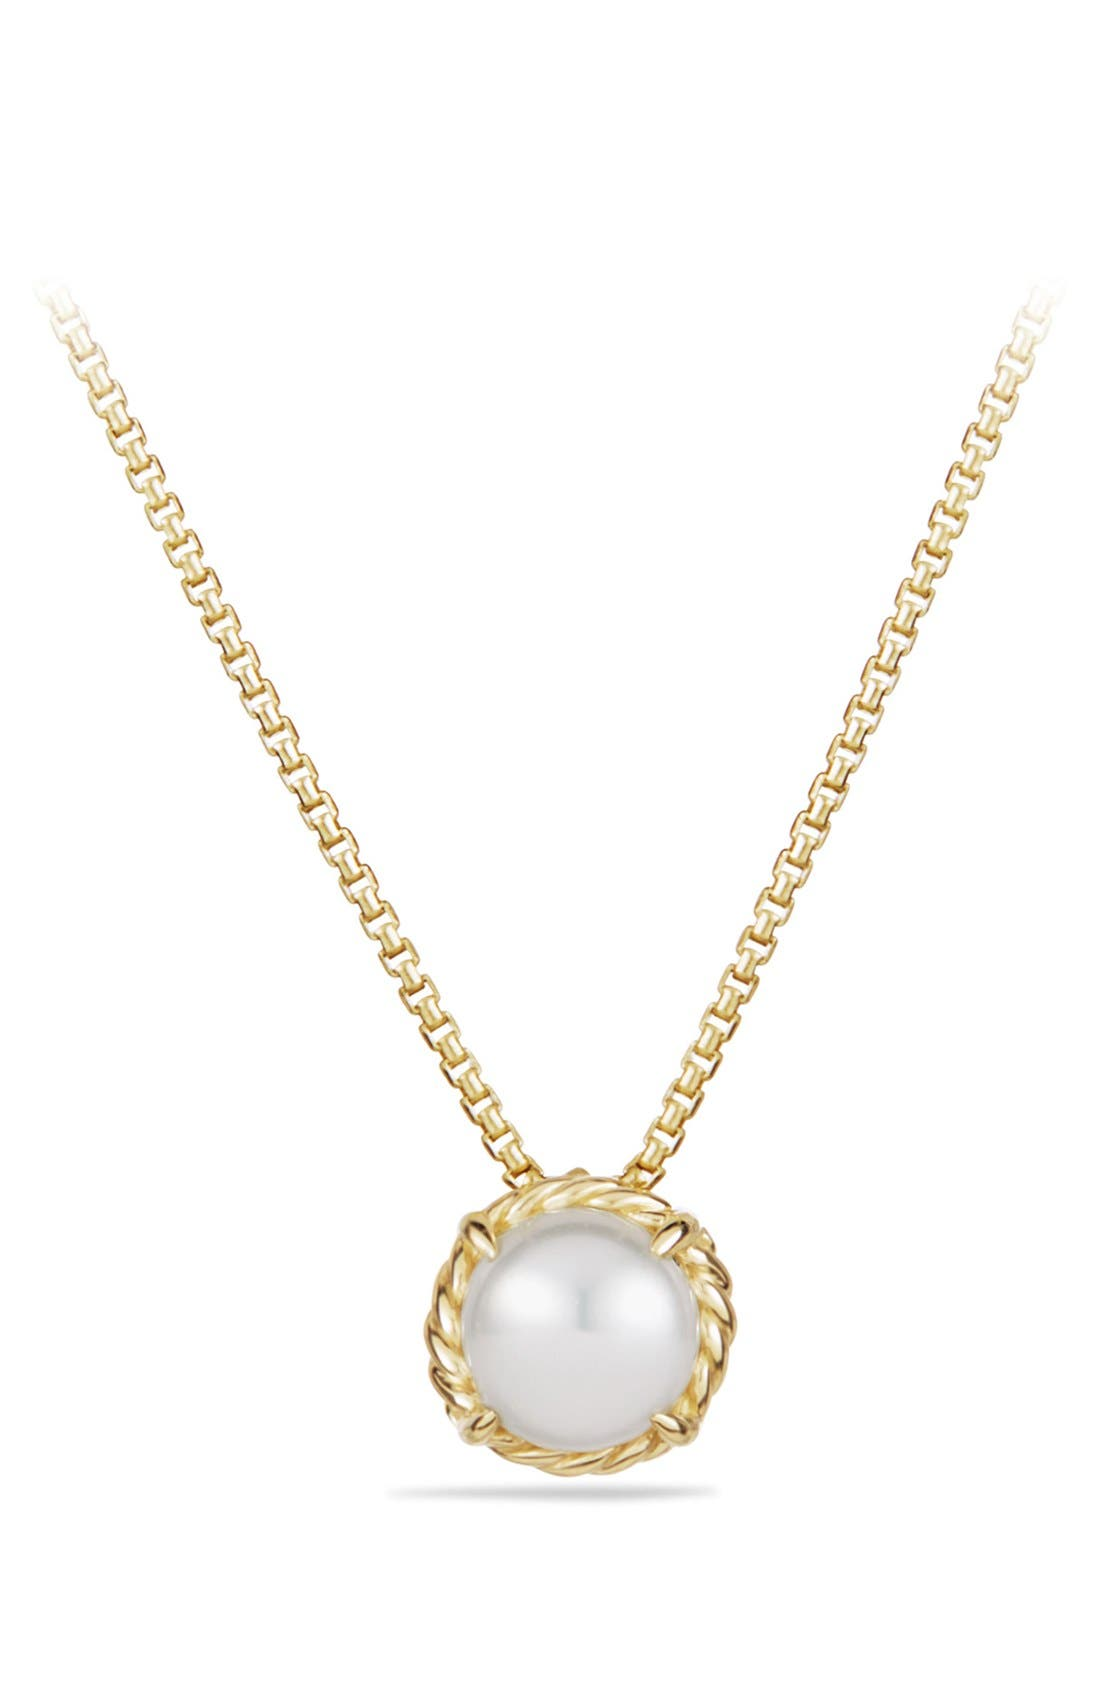 DAVID YURMAN 'Châtelaine' Pendant Necklace with Freshwater Pearl in 18K Gold, Main, color, 900